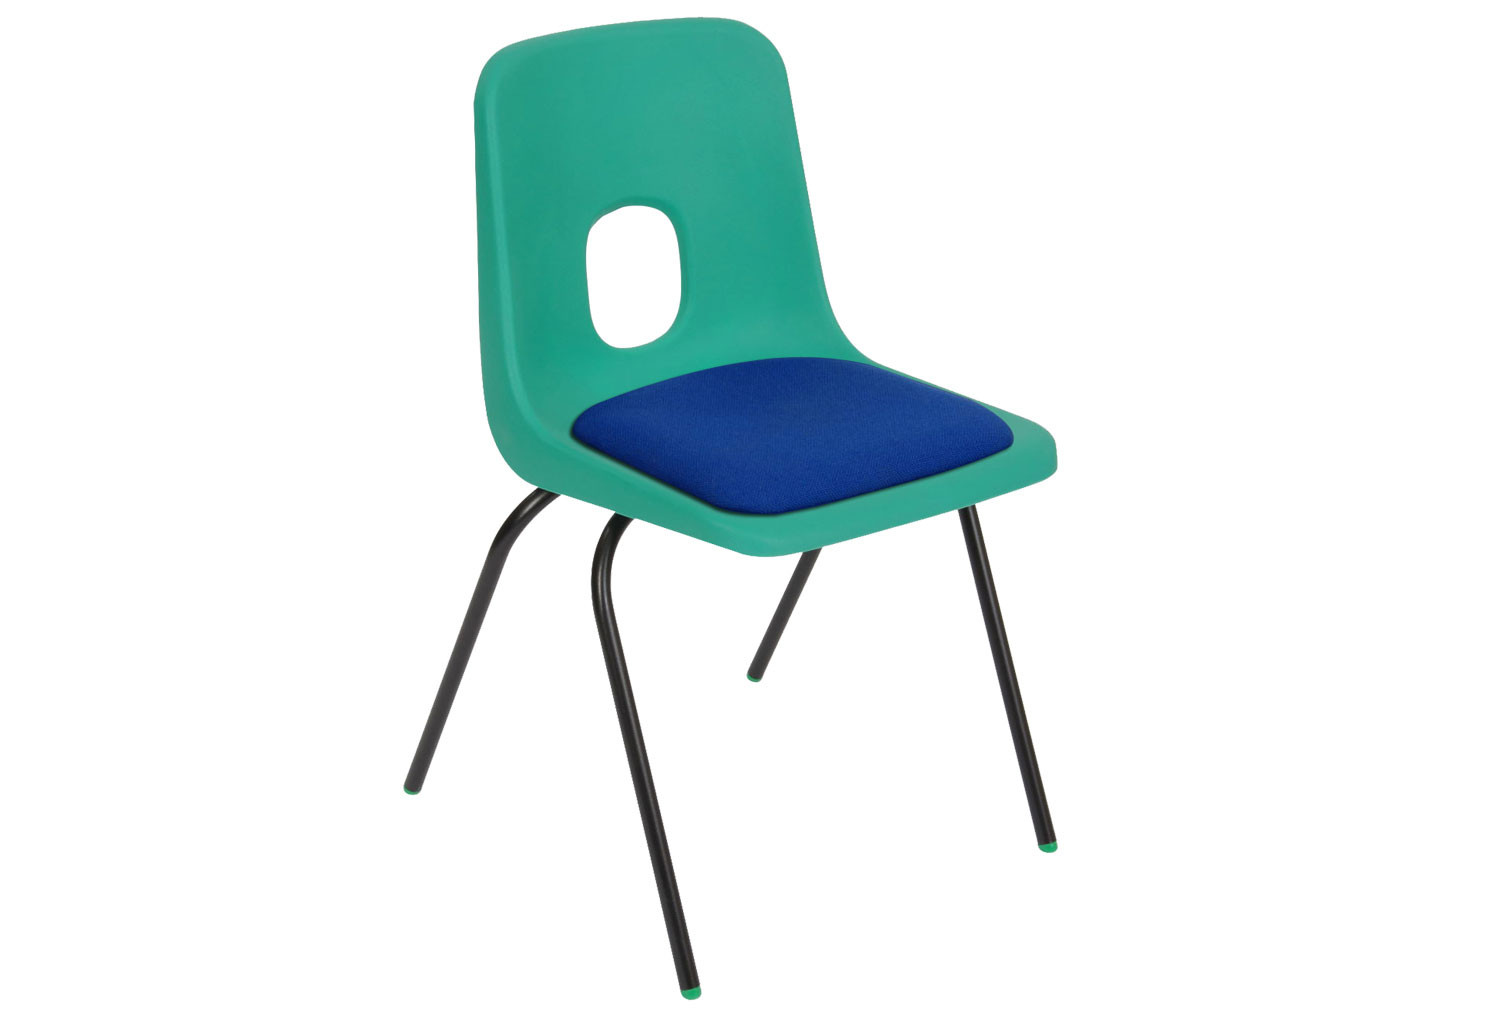 Hille E Series Chair With Upholstered Seat